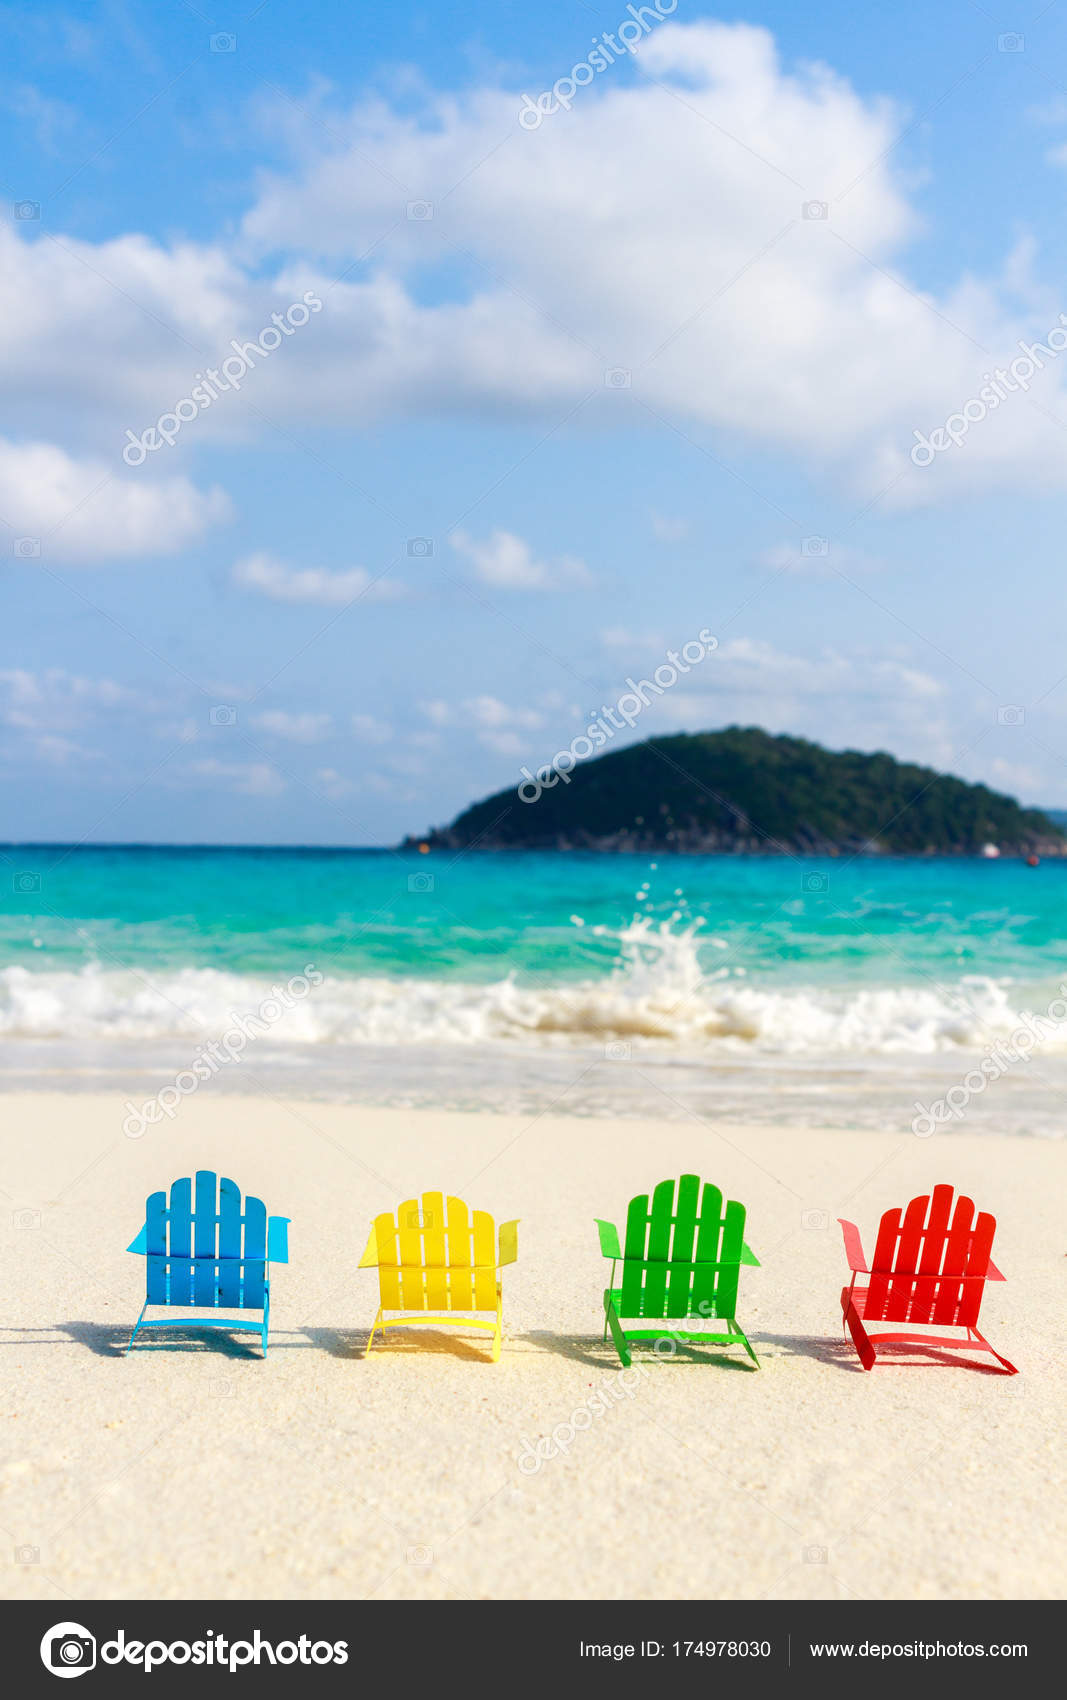 Beach Chairs On The Sandy Beaches For Tourists To Sit And Relax In The Soft Ocean Waves Breaking On The Beach Made Of Paper Stock Photo Image By Dadooda 174978030